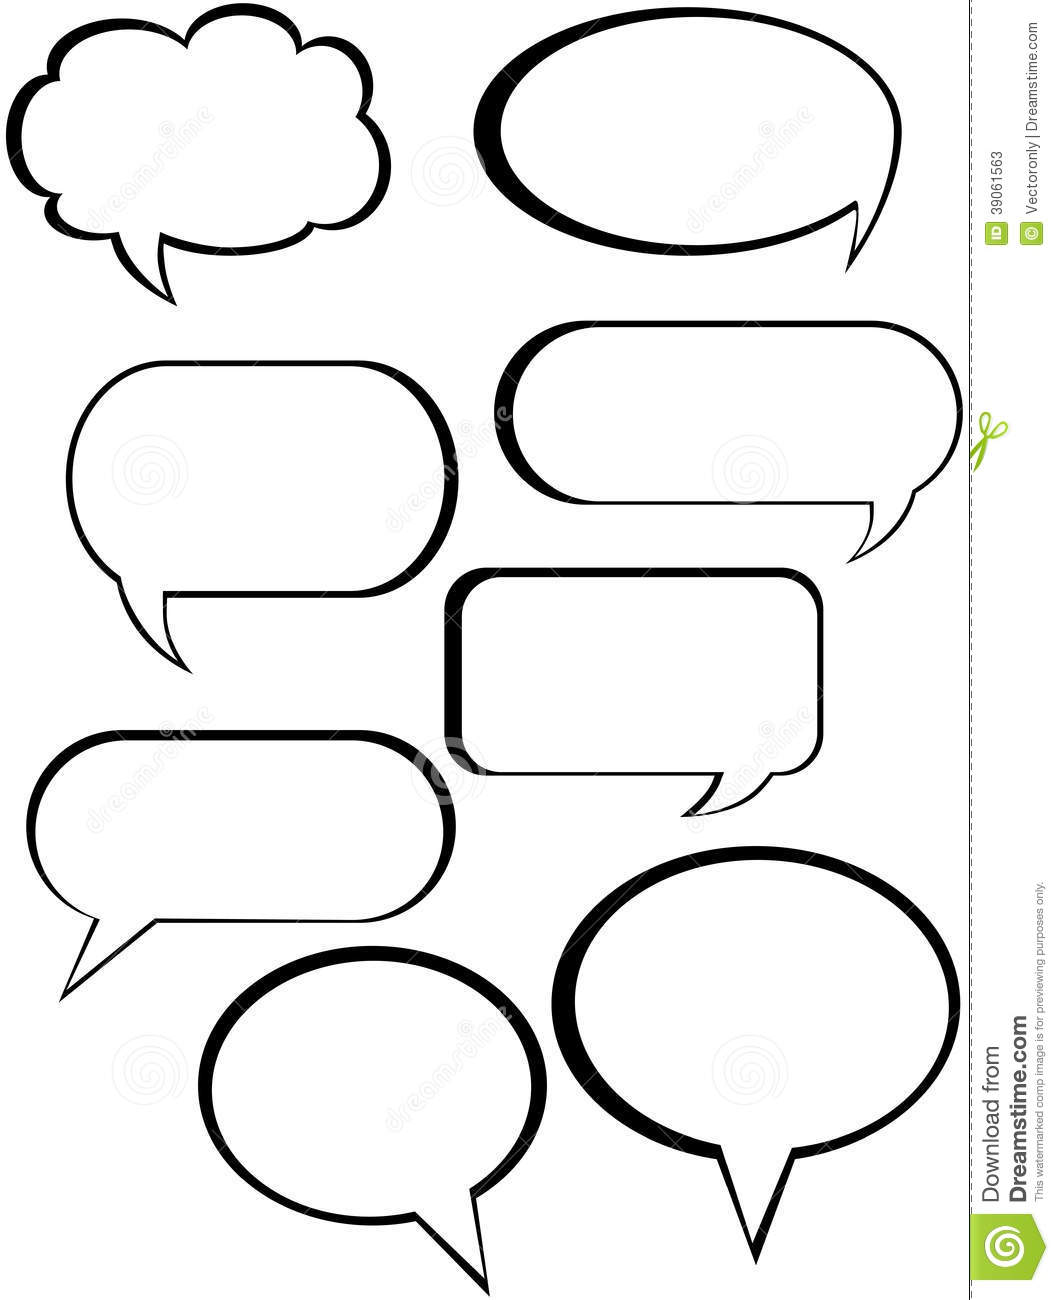 Stock Photos Callouts Vector Illustration Call Outs Black Image39061563 on Shapes Rubber Stamp